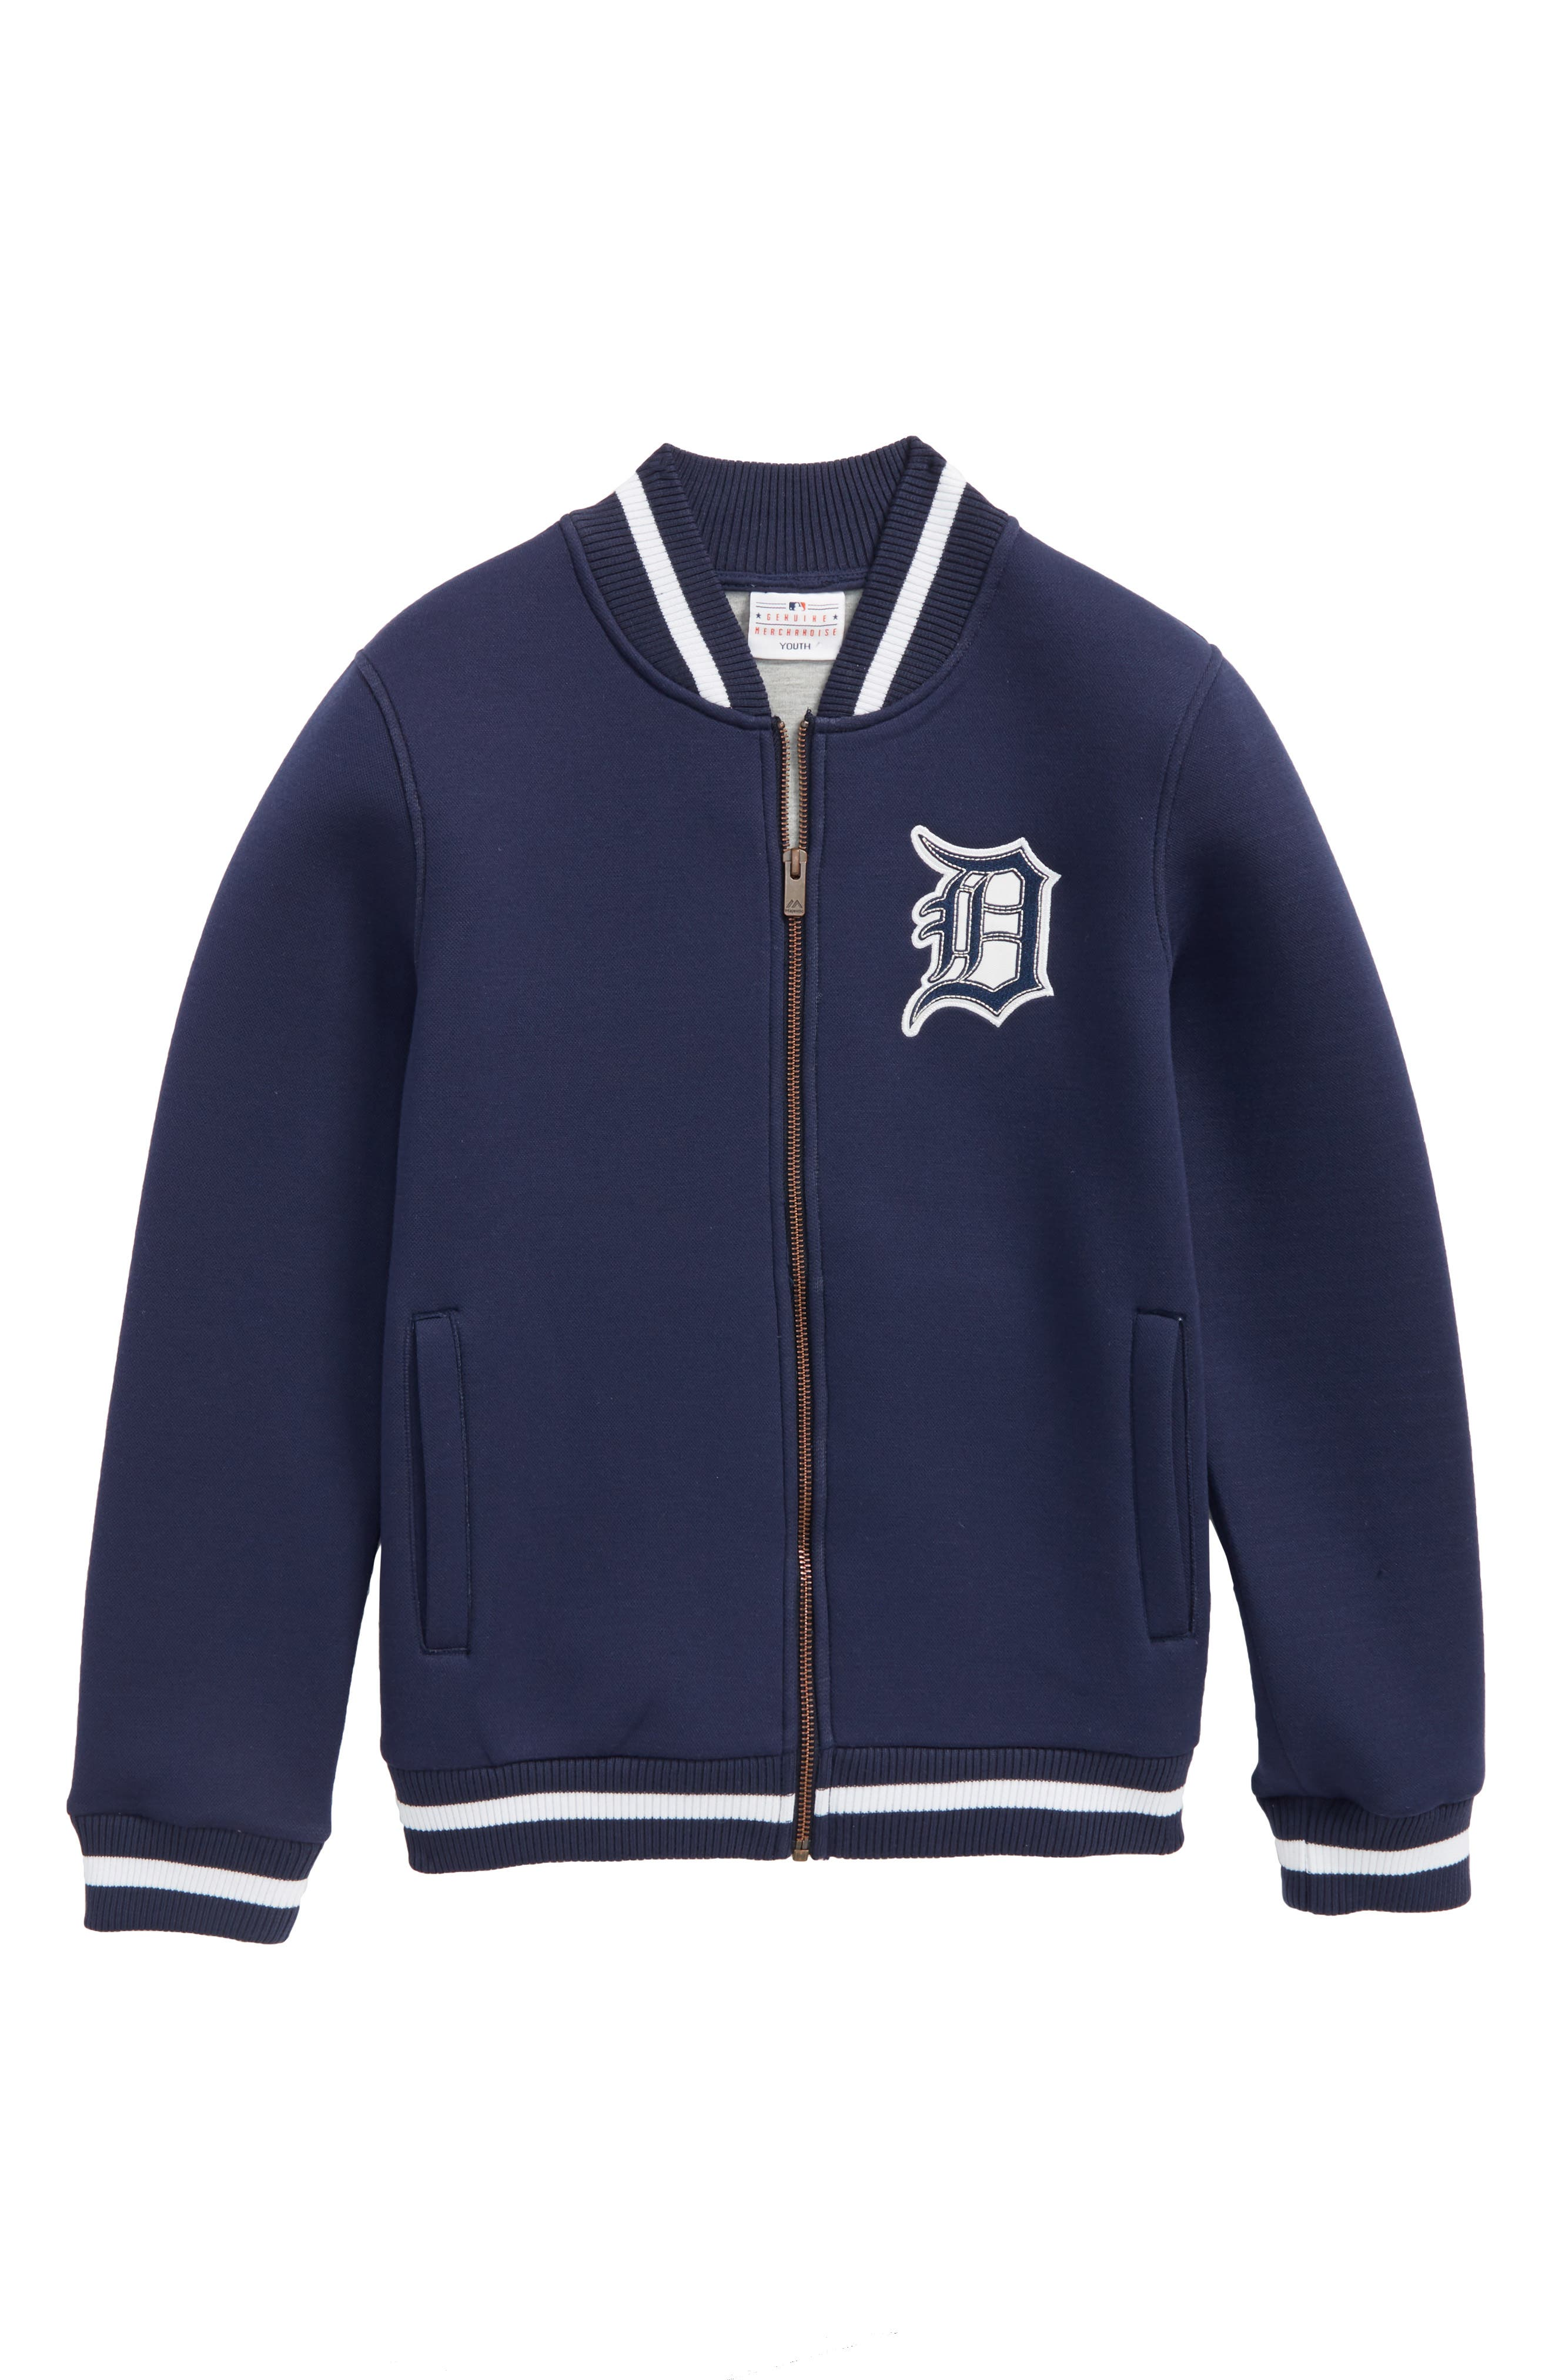 Classical Detroit Tigers Knit Varsity Jacket,                         Main,                         color, Navy